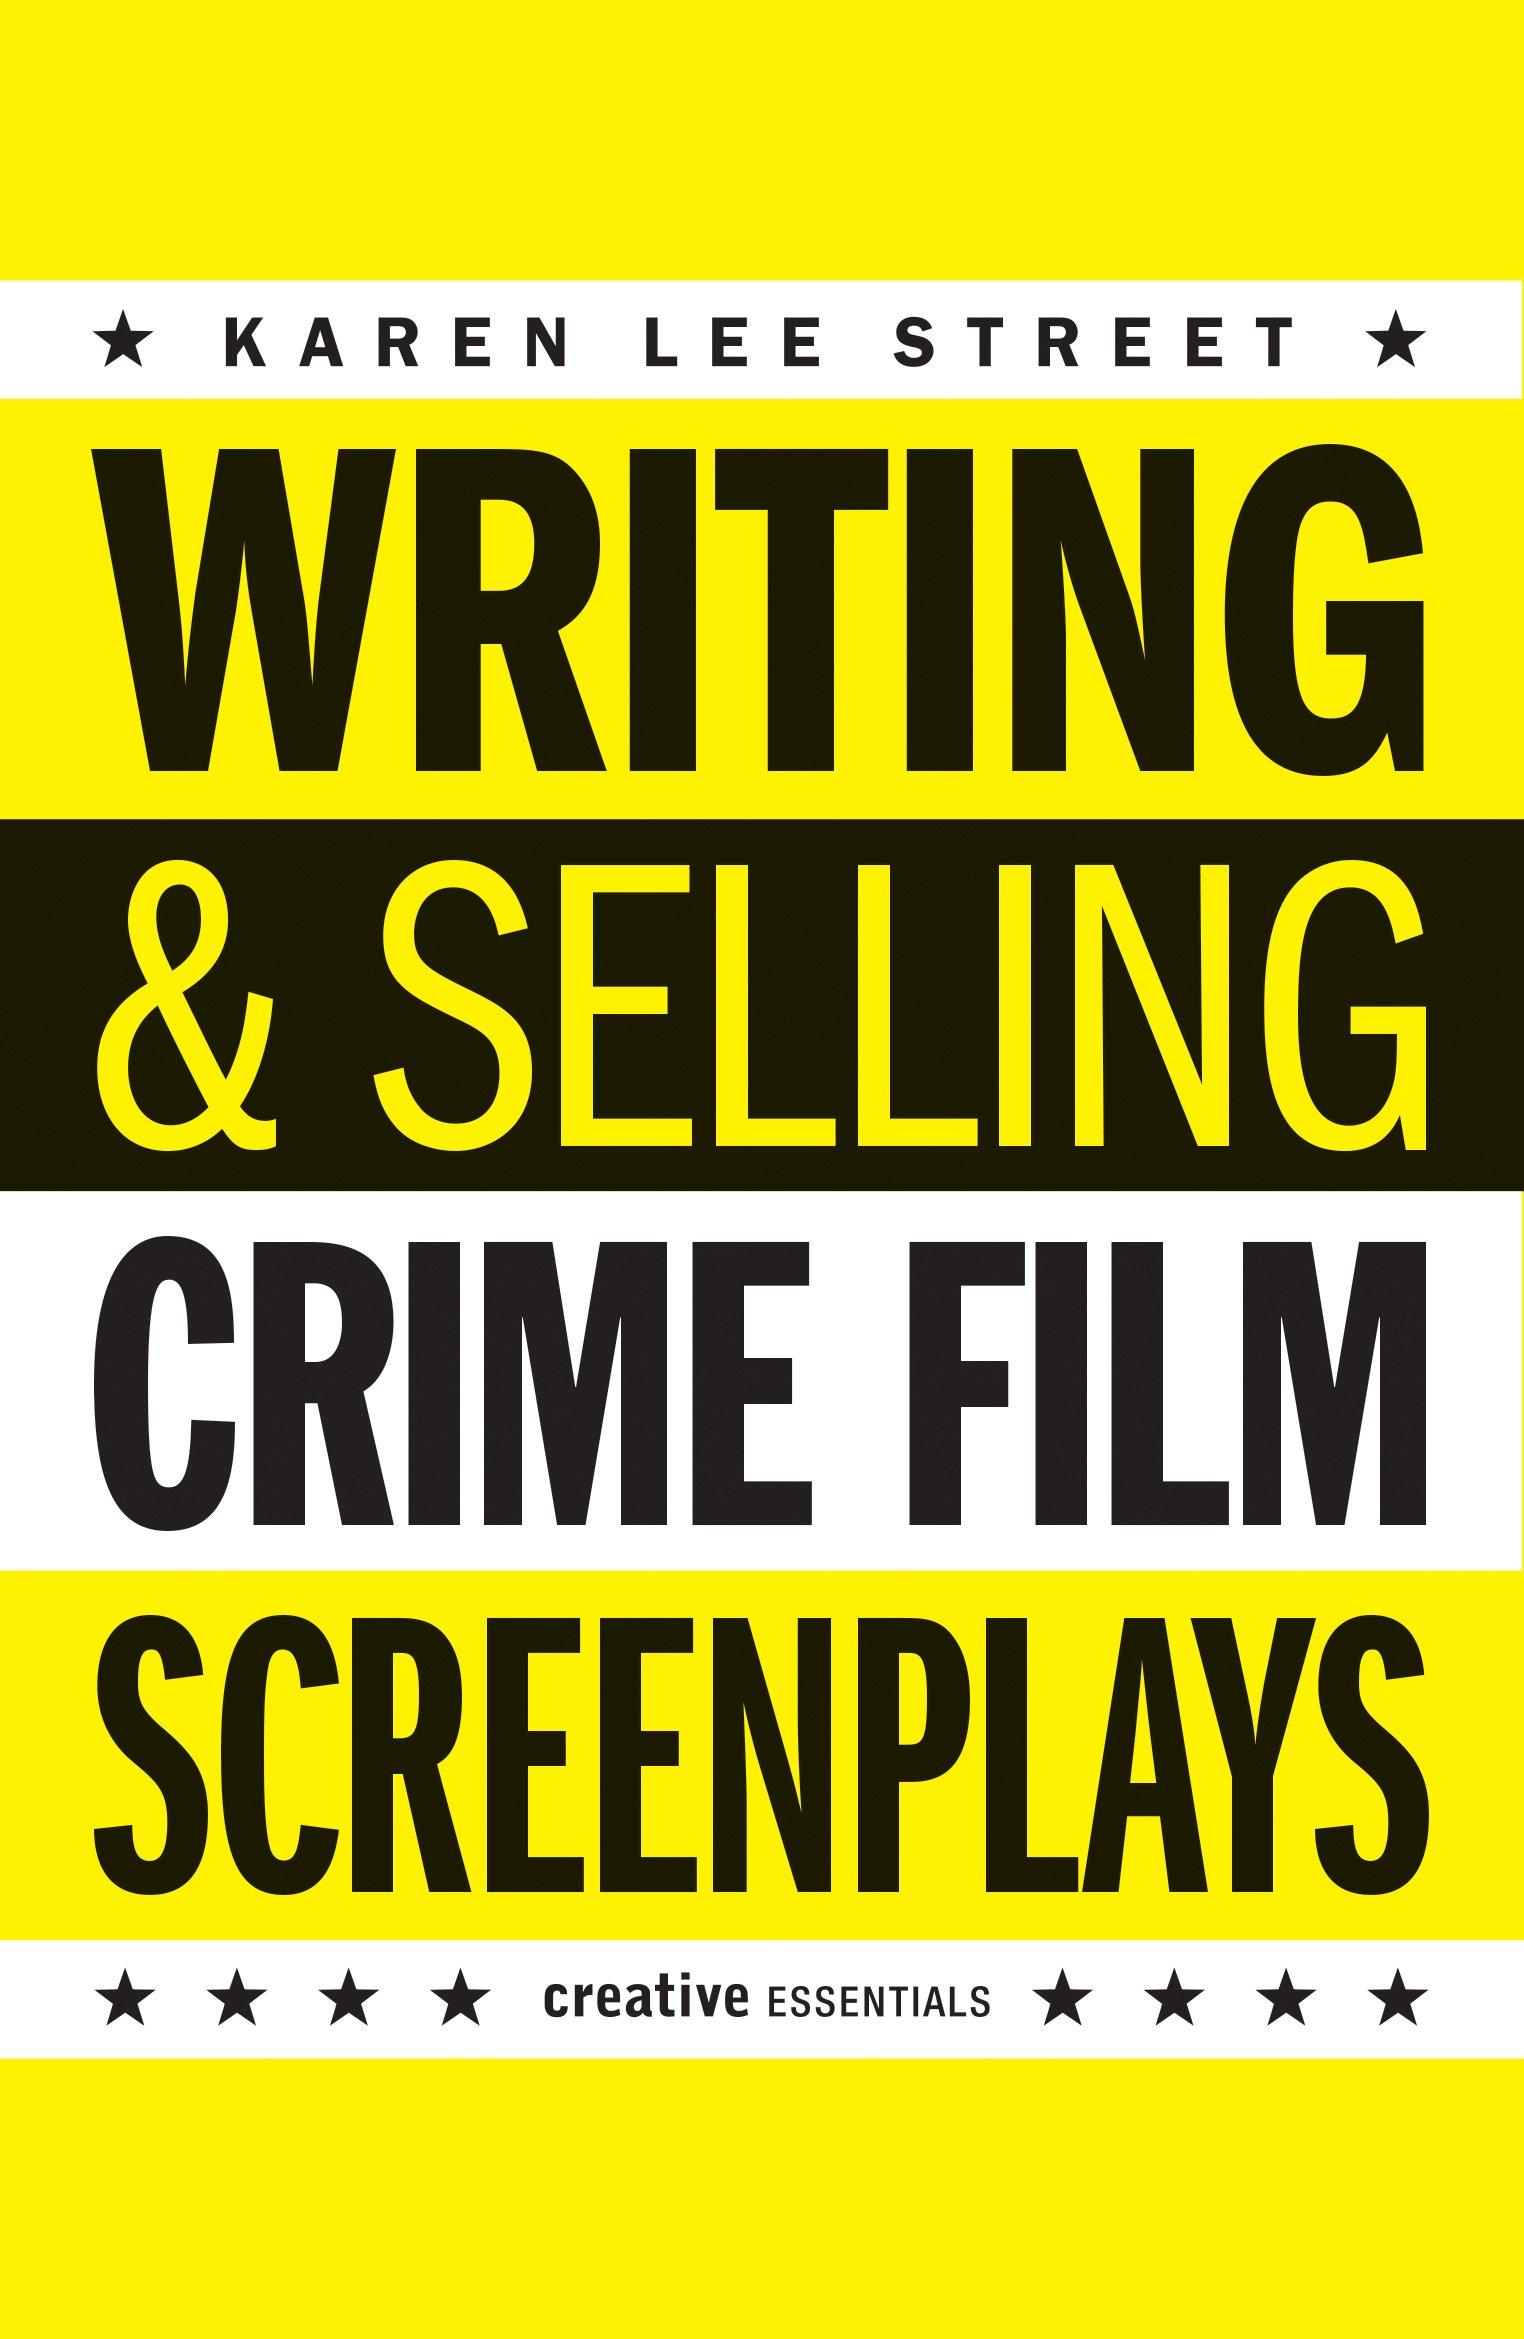 Writing and Selling: Crime Film Screenplays (Writing & Selling Screenplays):  Amazon.co.uk: Karen Lee Street: 9781842439746: Books